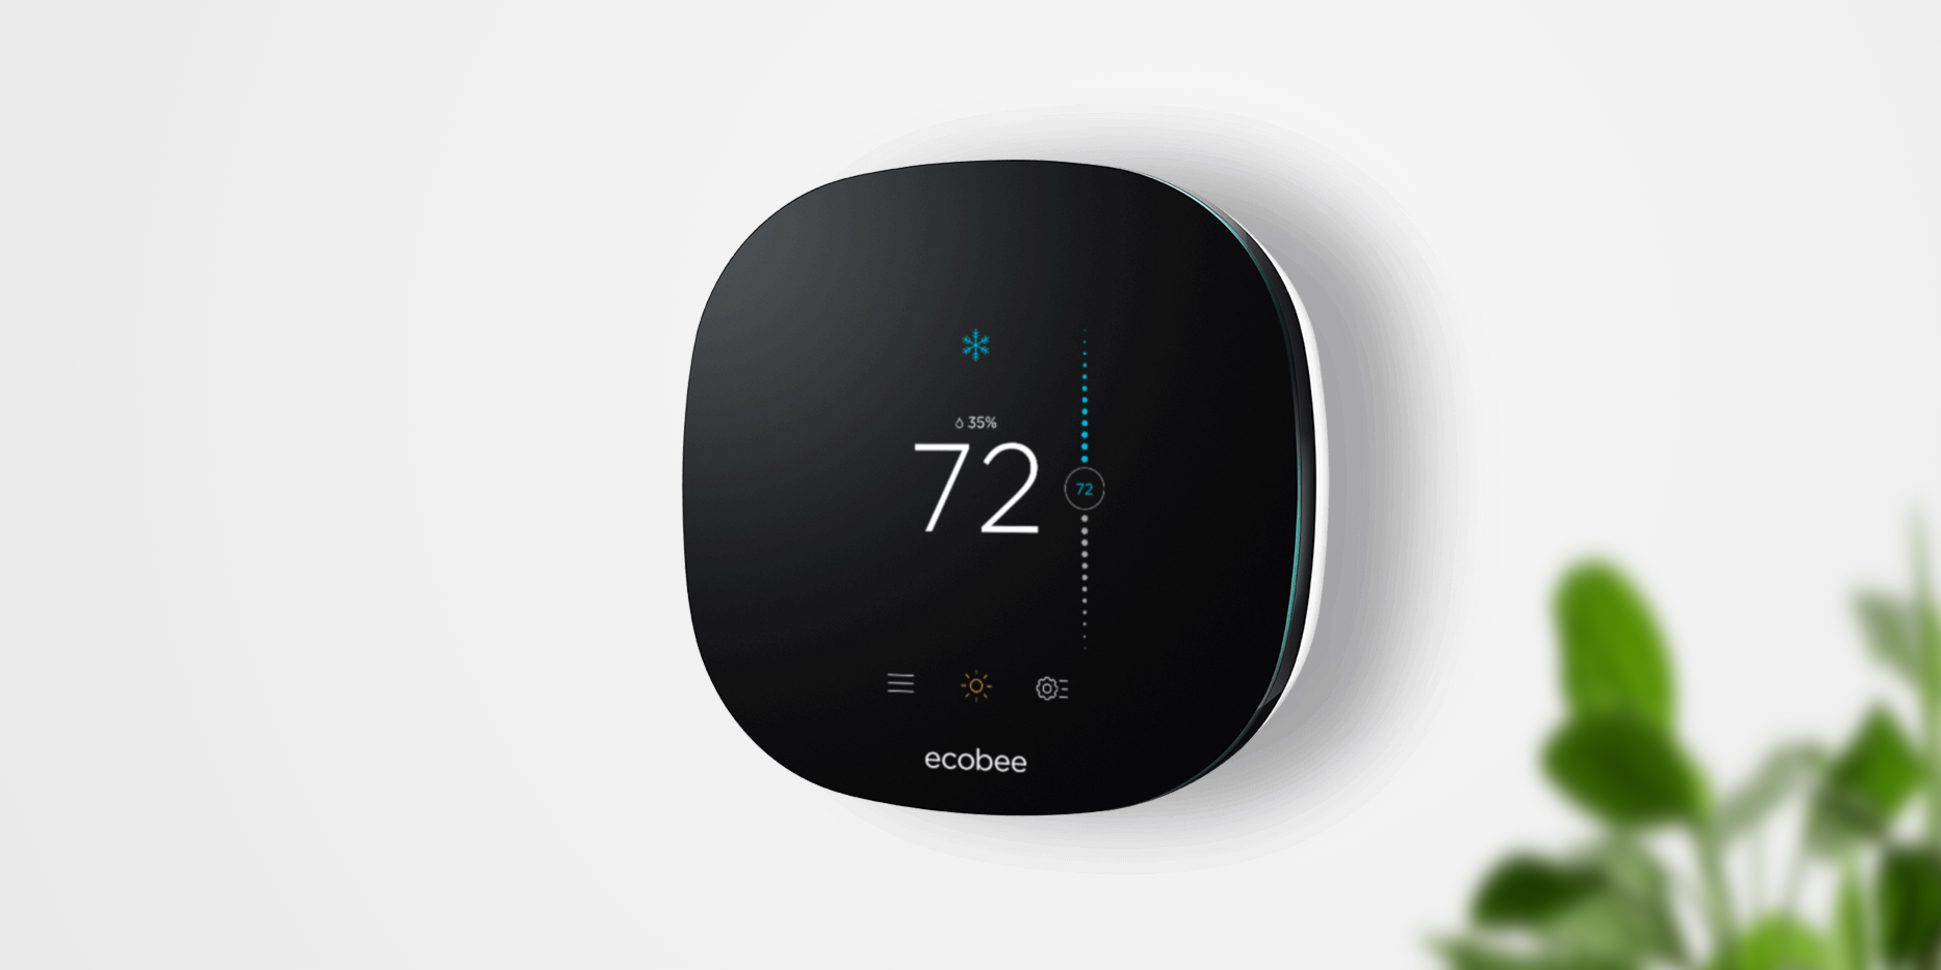 ecobee3 lite hits Black Friday price at $139 shipped + free Echo Dot at select retailers